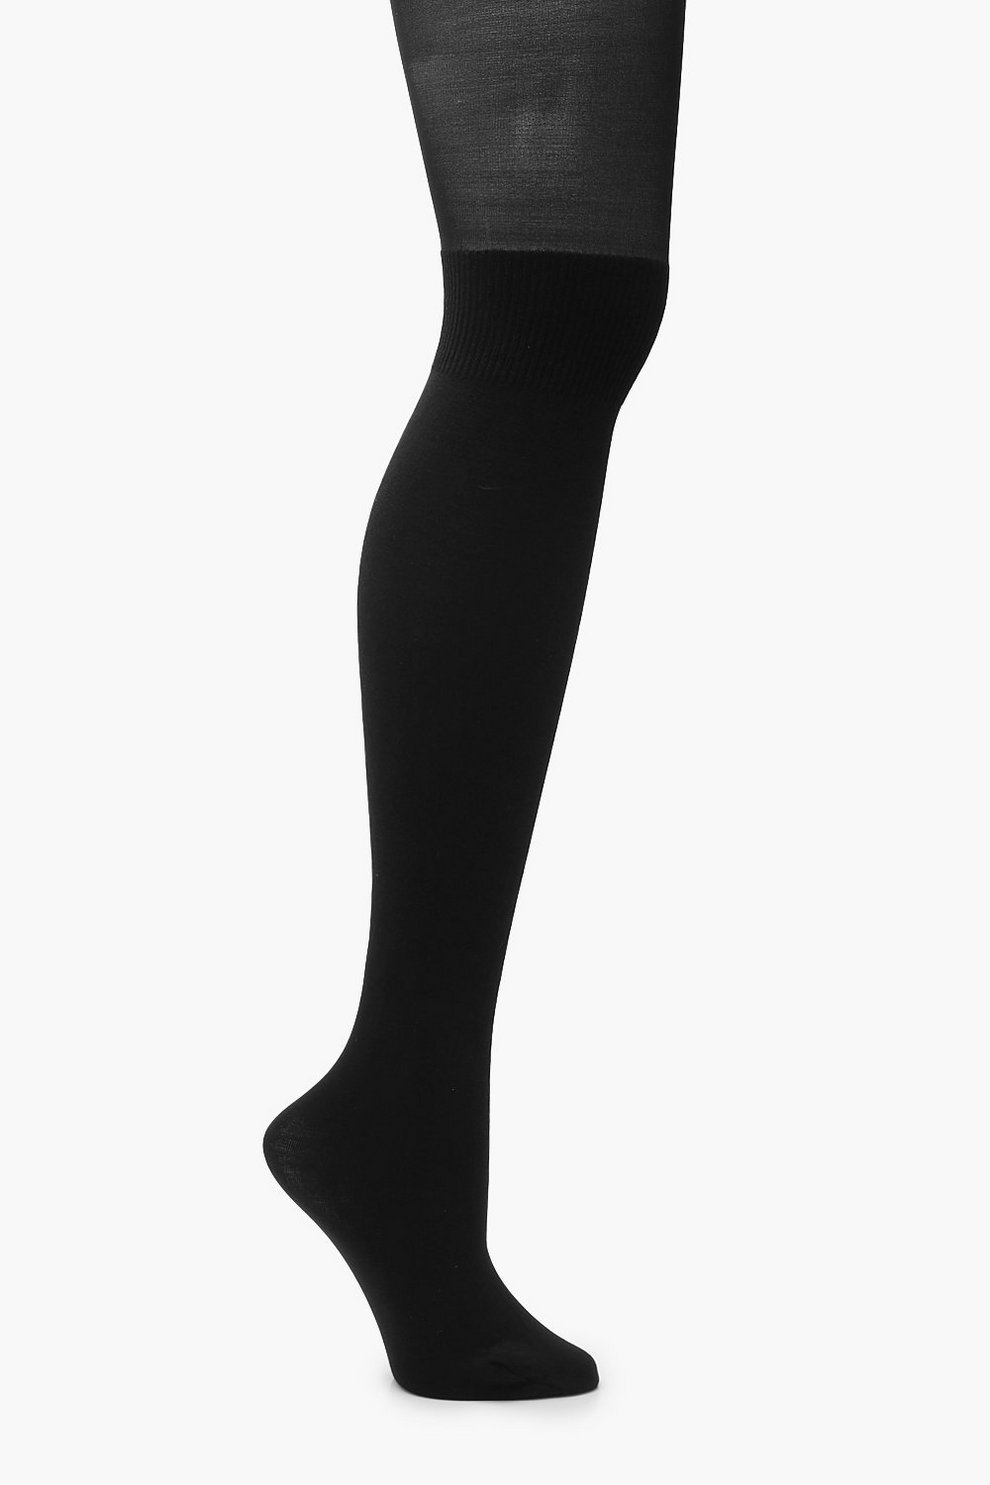 ca89d0458c9 Womens Black Mock Over The Knee Tights